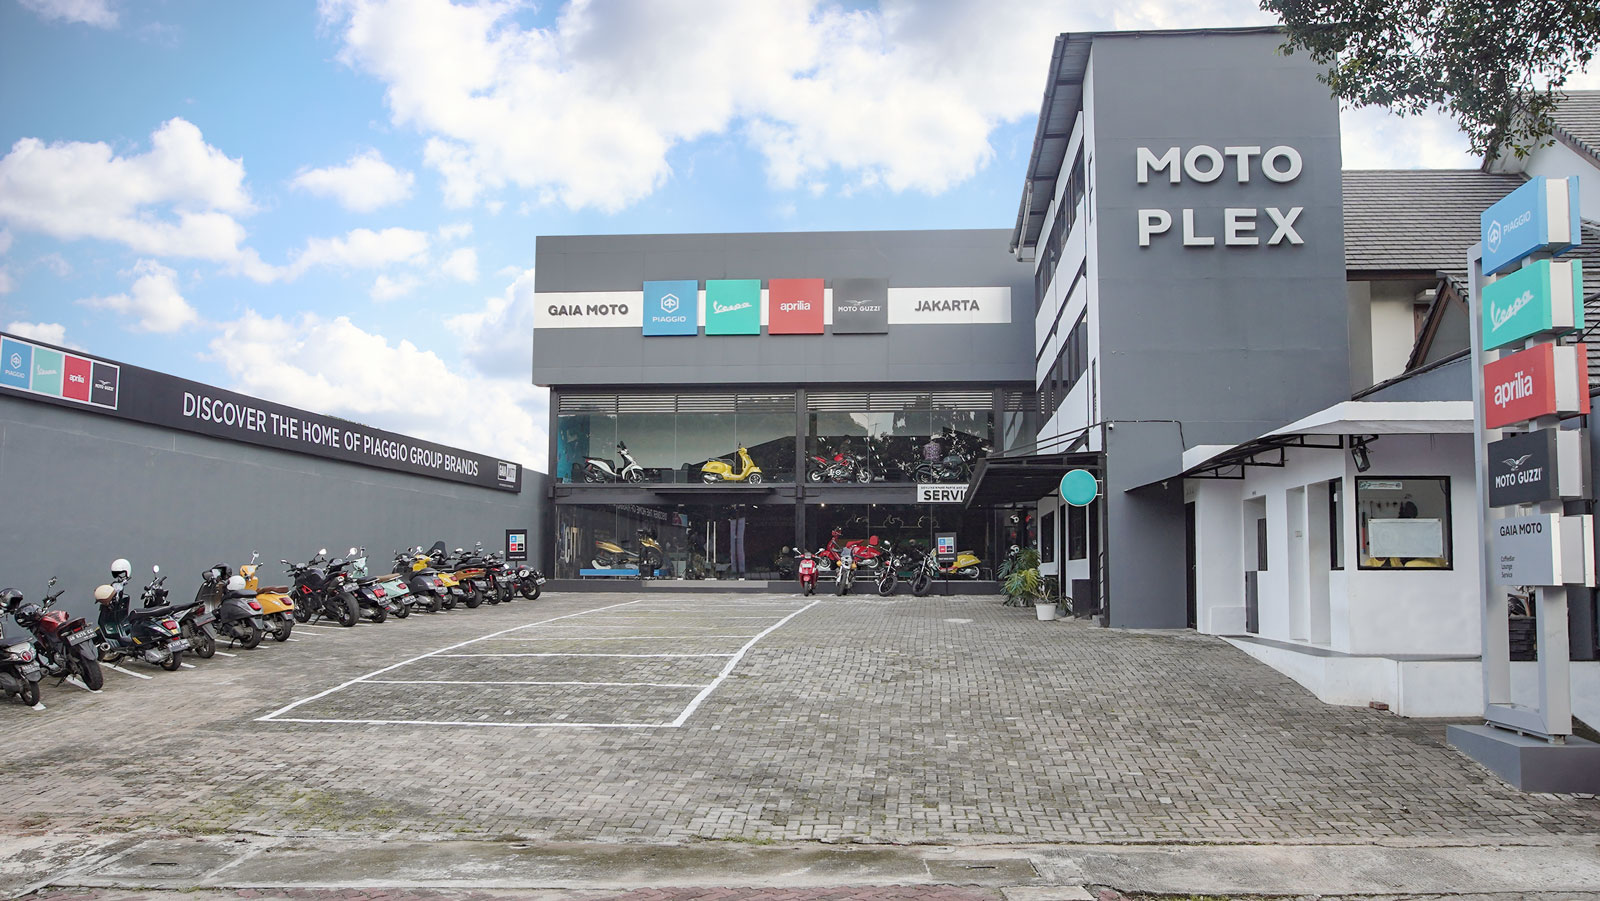 Showcase of motorcycles